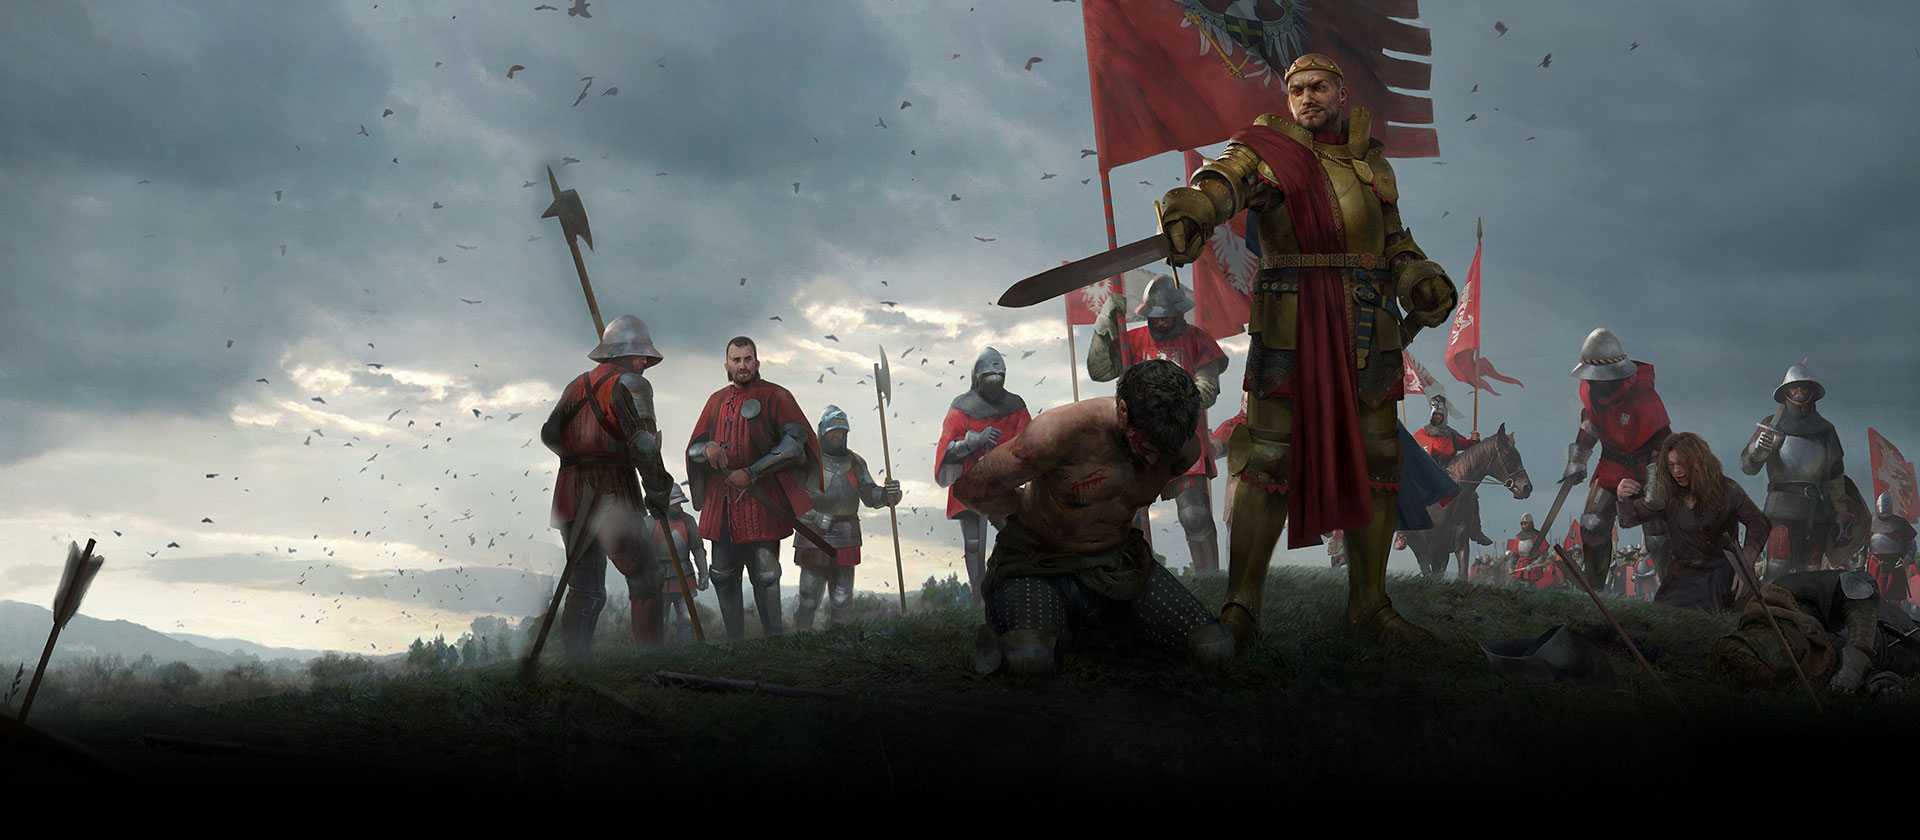 Royal Redanian Army